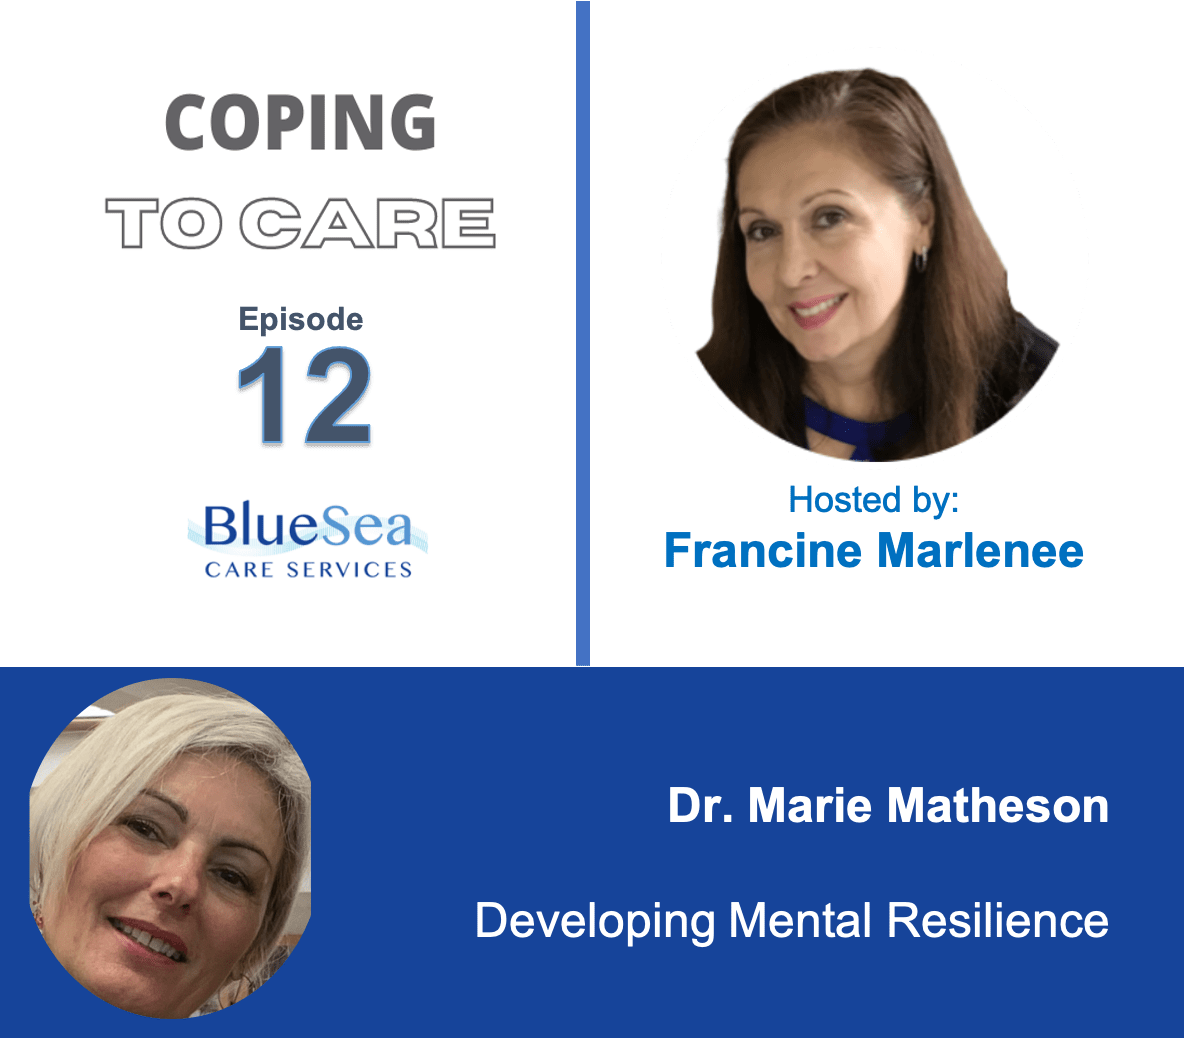 Developing A State of Mental Resilience